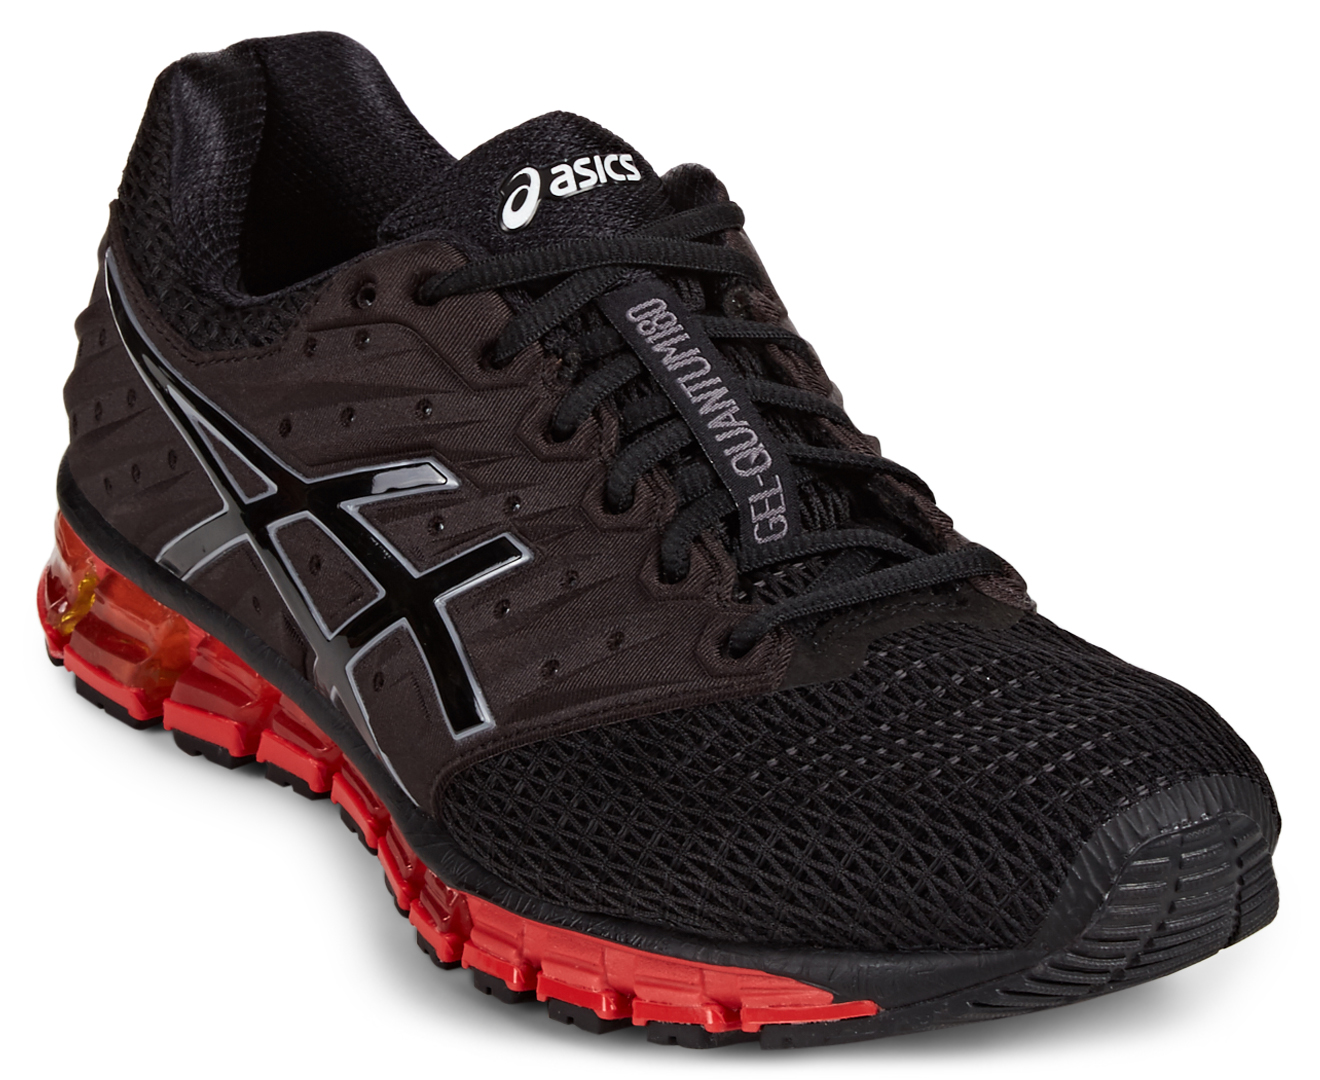 asics men 39 s gel quantum 180 2 black onyx vermilion great daily deals at australia 39 s. Black Bedroom Furniture Sets. Home Design Ideas